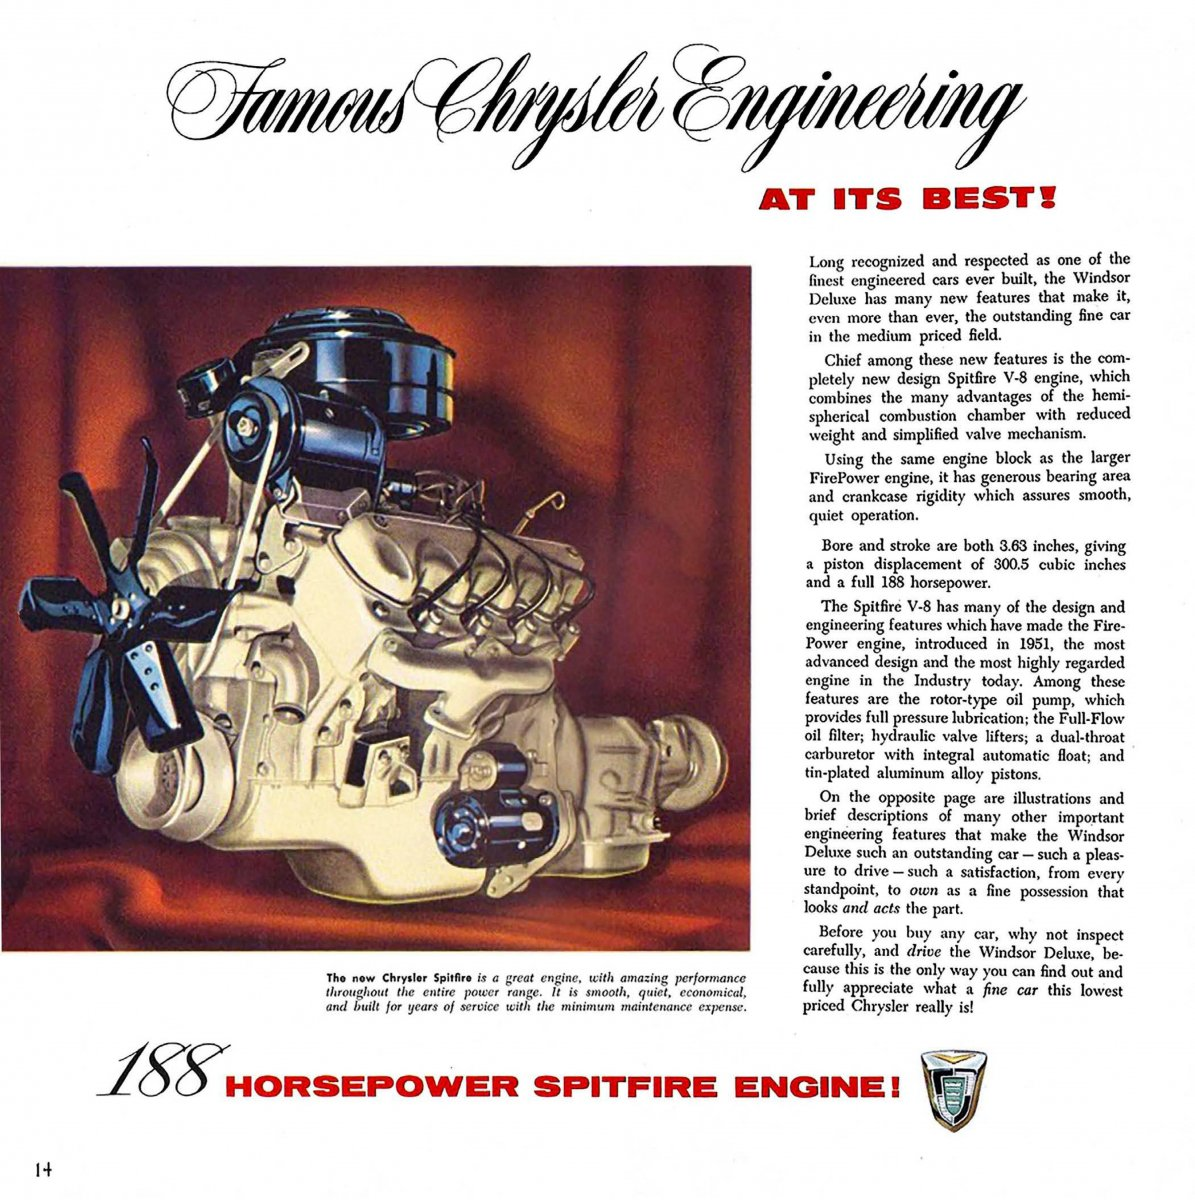 1955_Chrysler_Windsor_Brochure_1-16_14.jpg